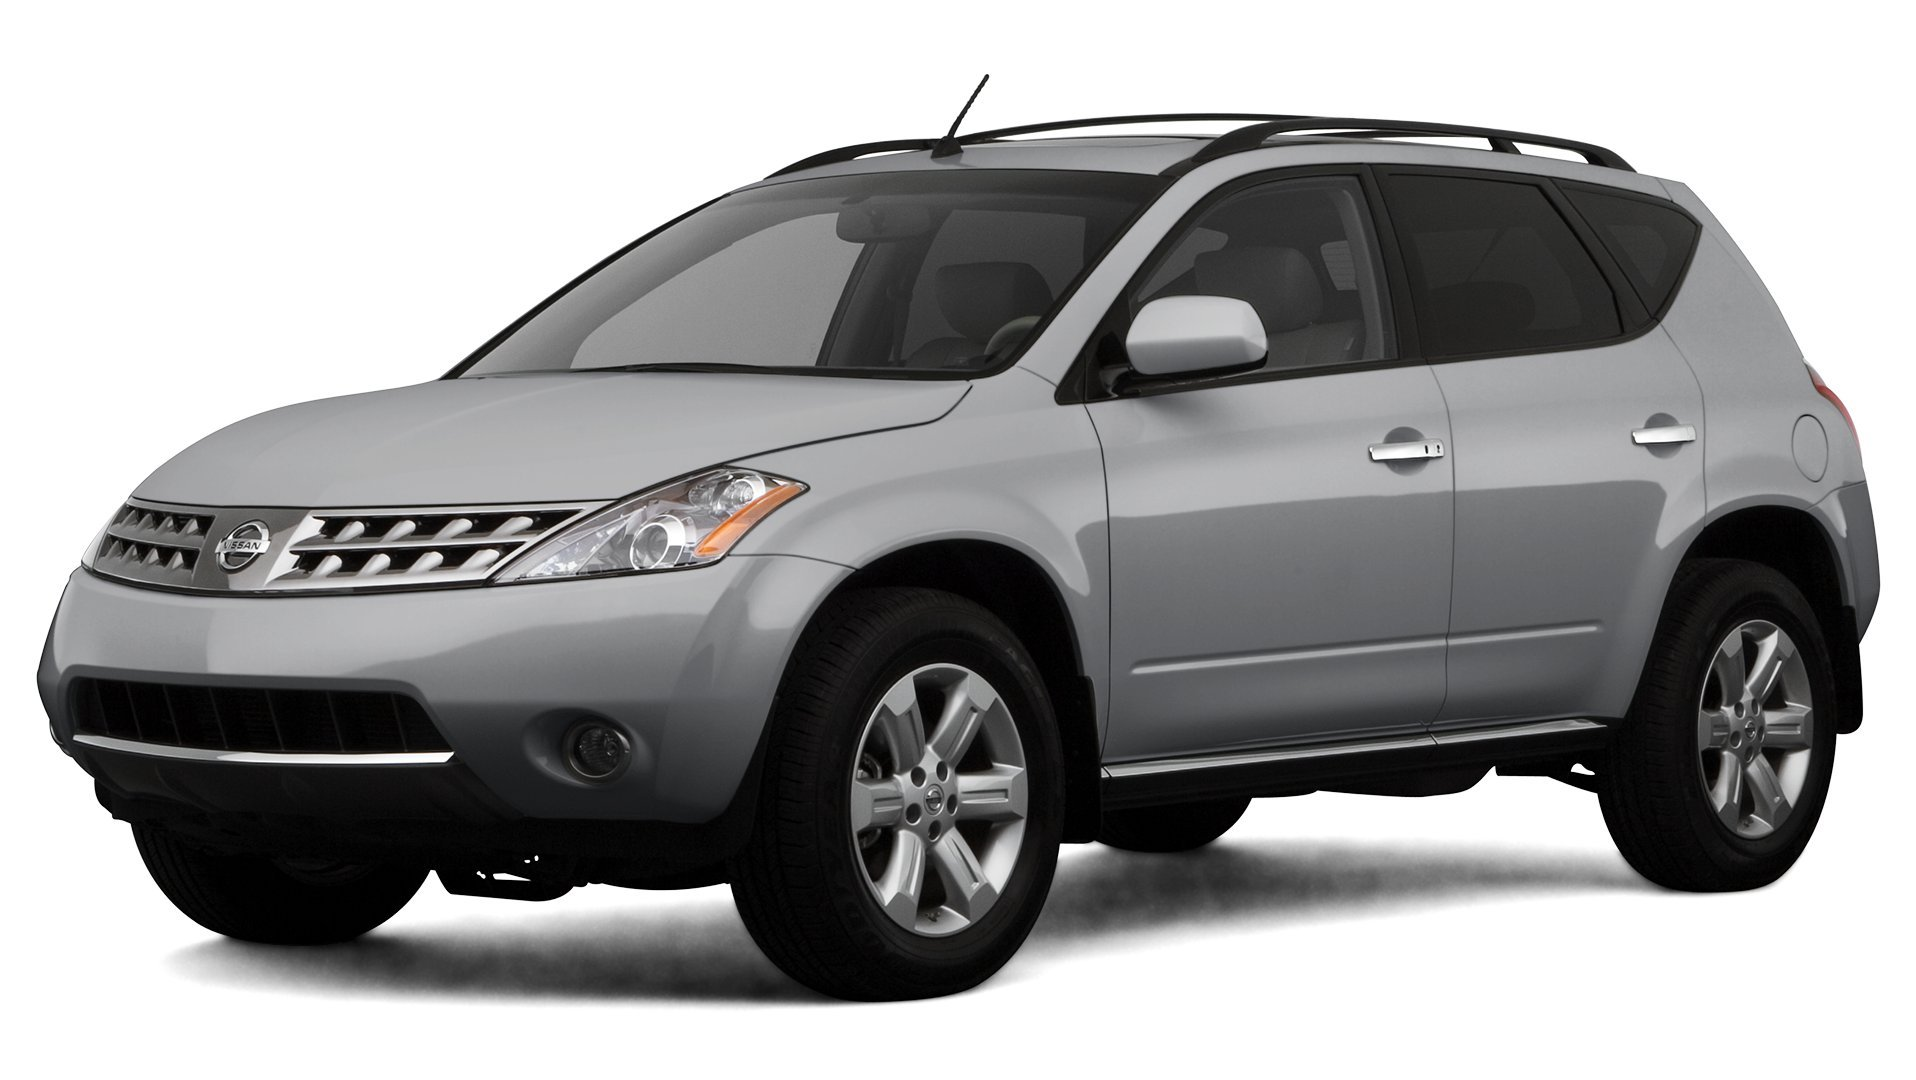 2007 Nissan Murano Owners Manual Download Free Fuse Box Amazon Com Reviews Images And Specs Vehicles Rh Versa